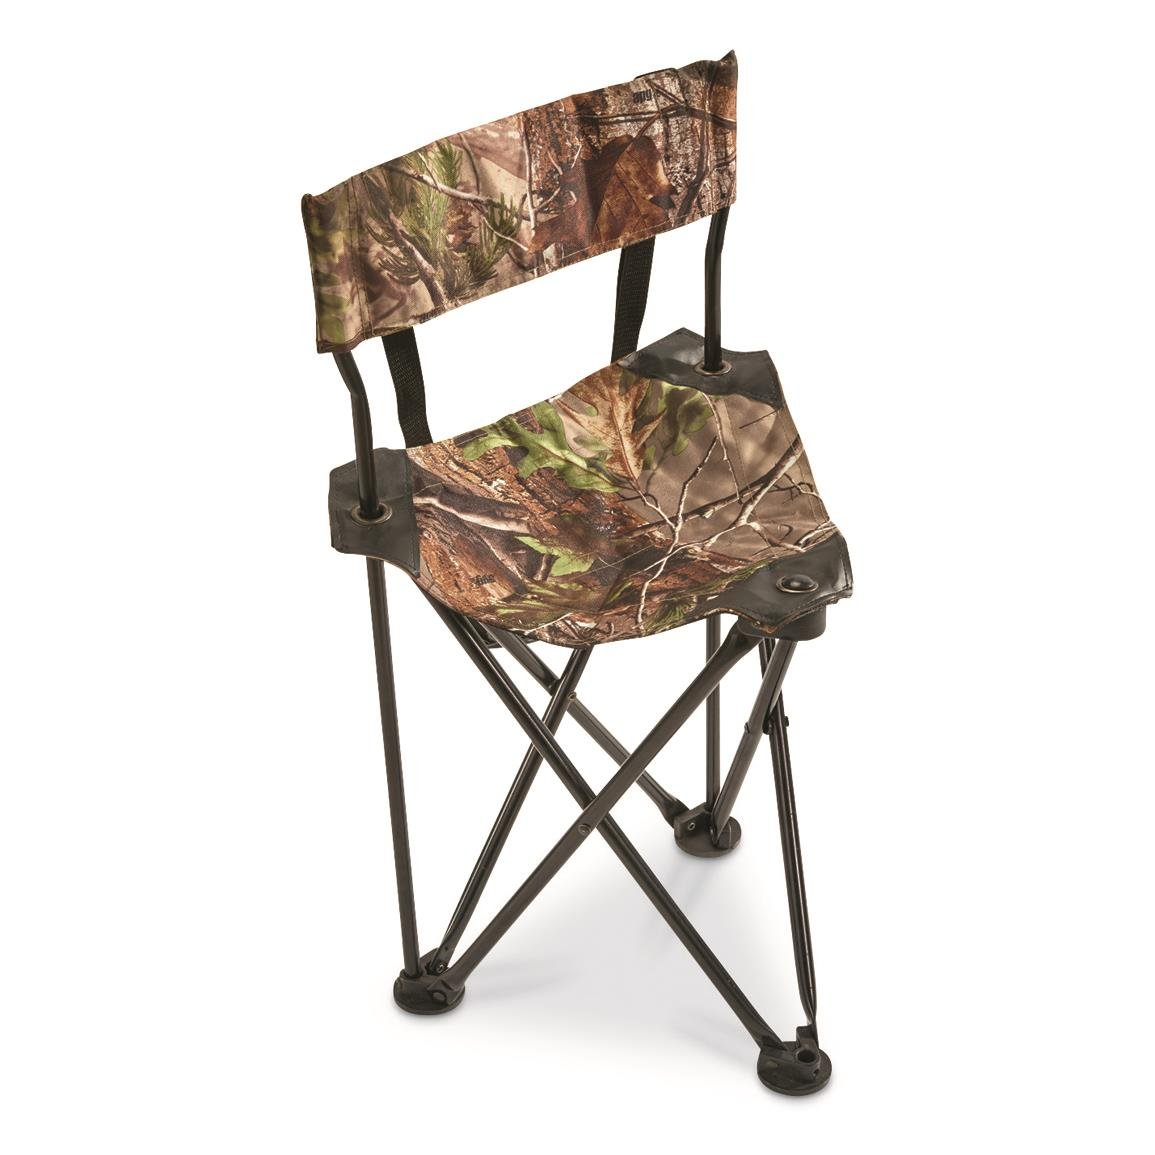 Groovy Take A Load Off With These 10 Hunting Blind Chairs Inzonedesignstudio Interior Chair Design Inzonedesignstudiocom